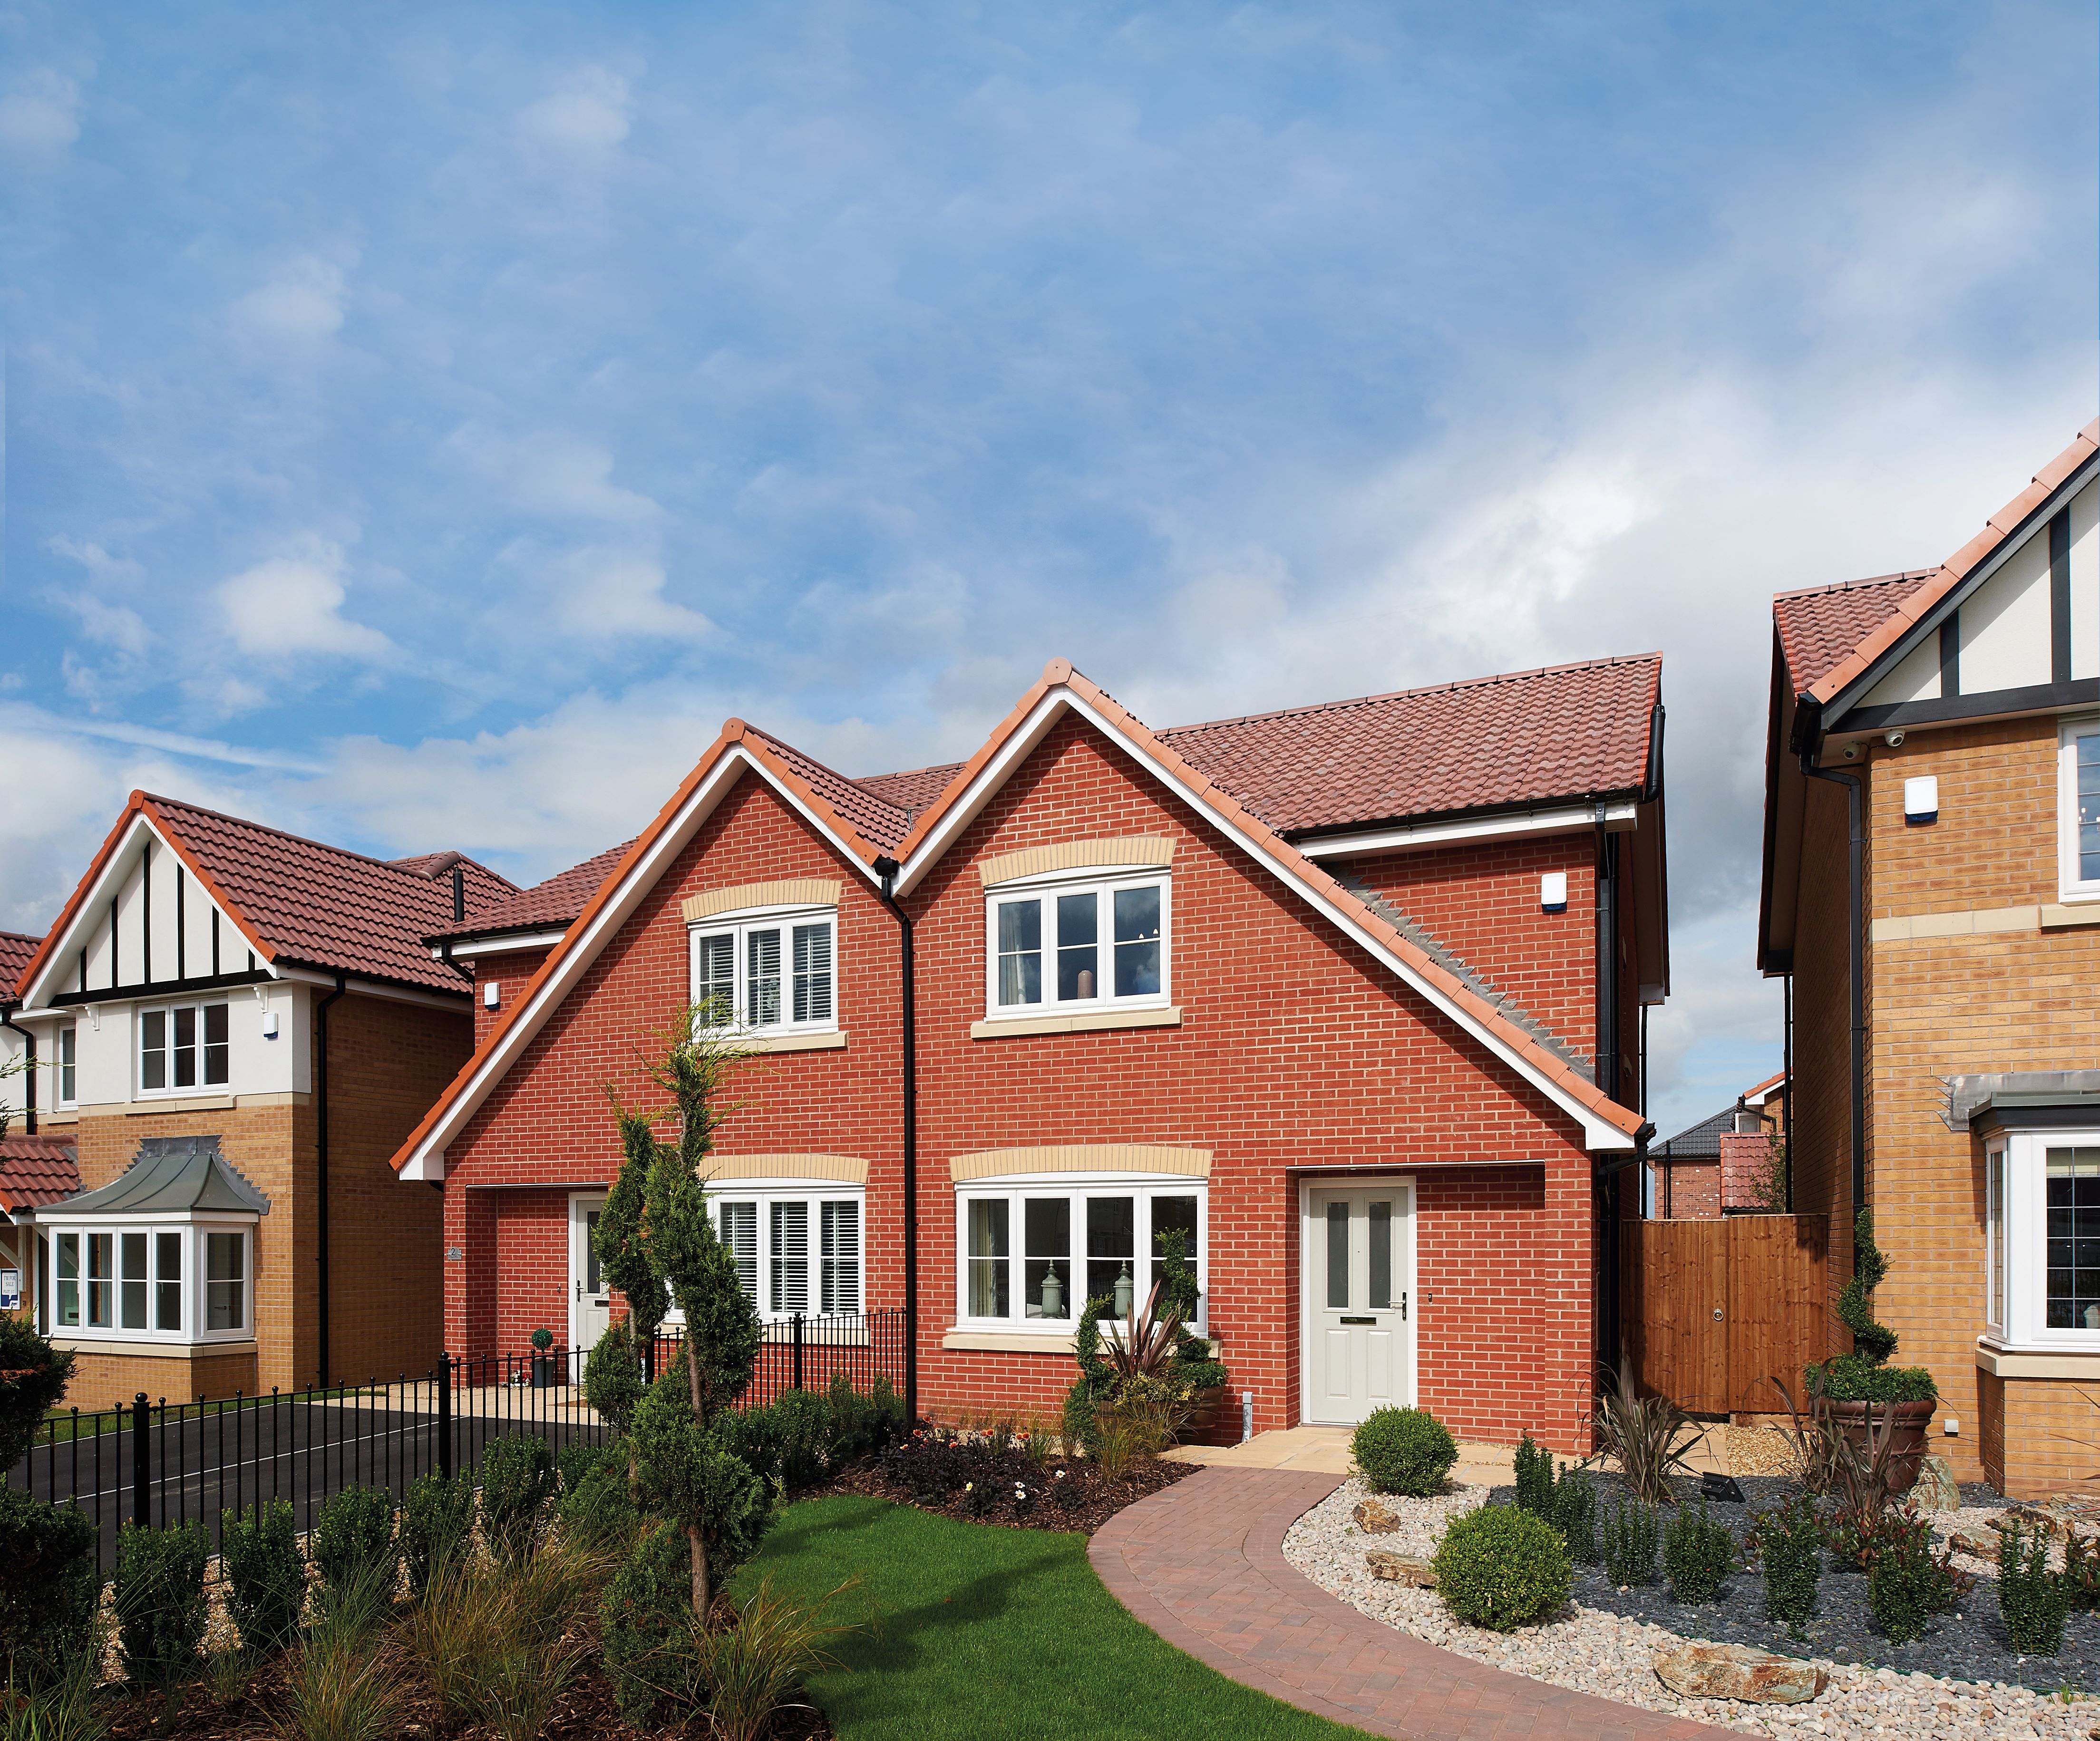 Jones Homes secures Help to Buy Funding at developments in Nottinghamshire and Derbyshire